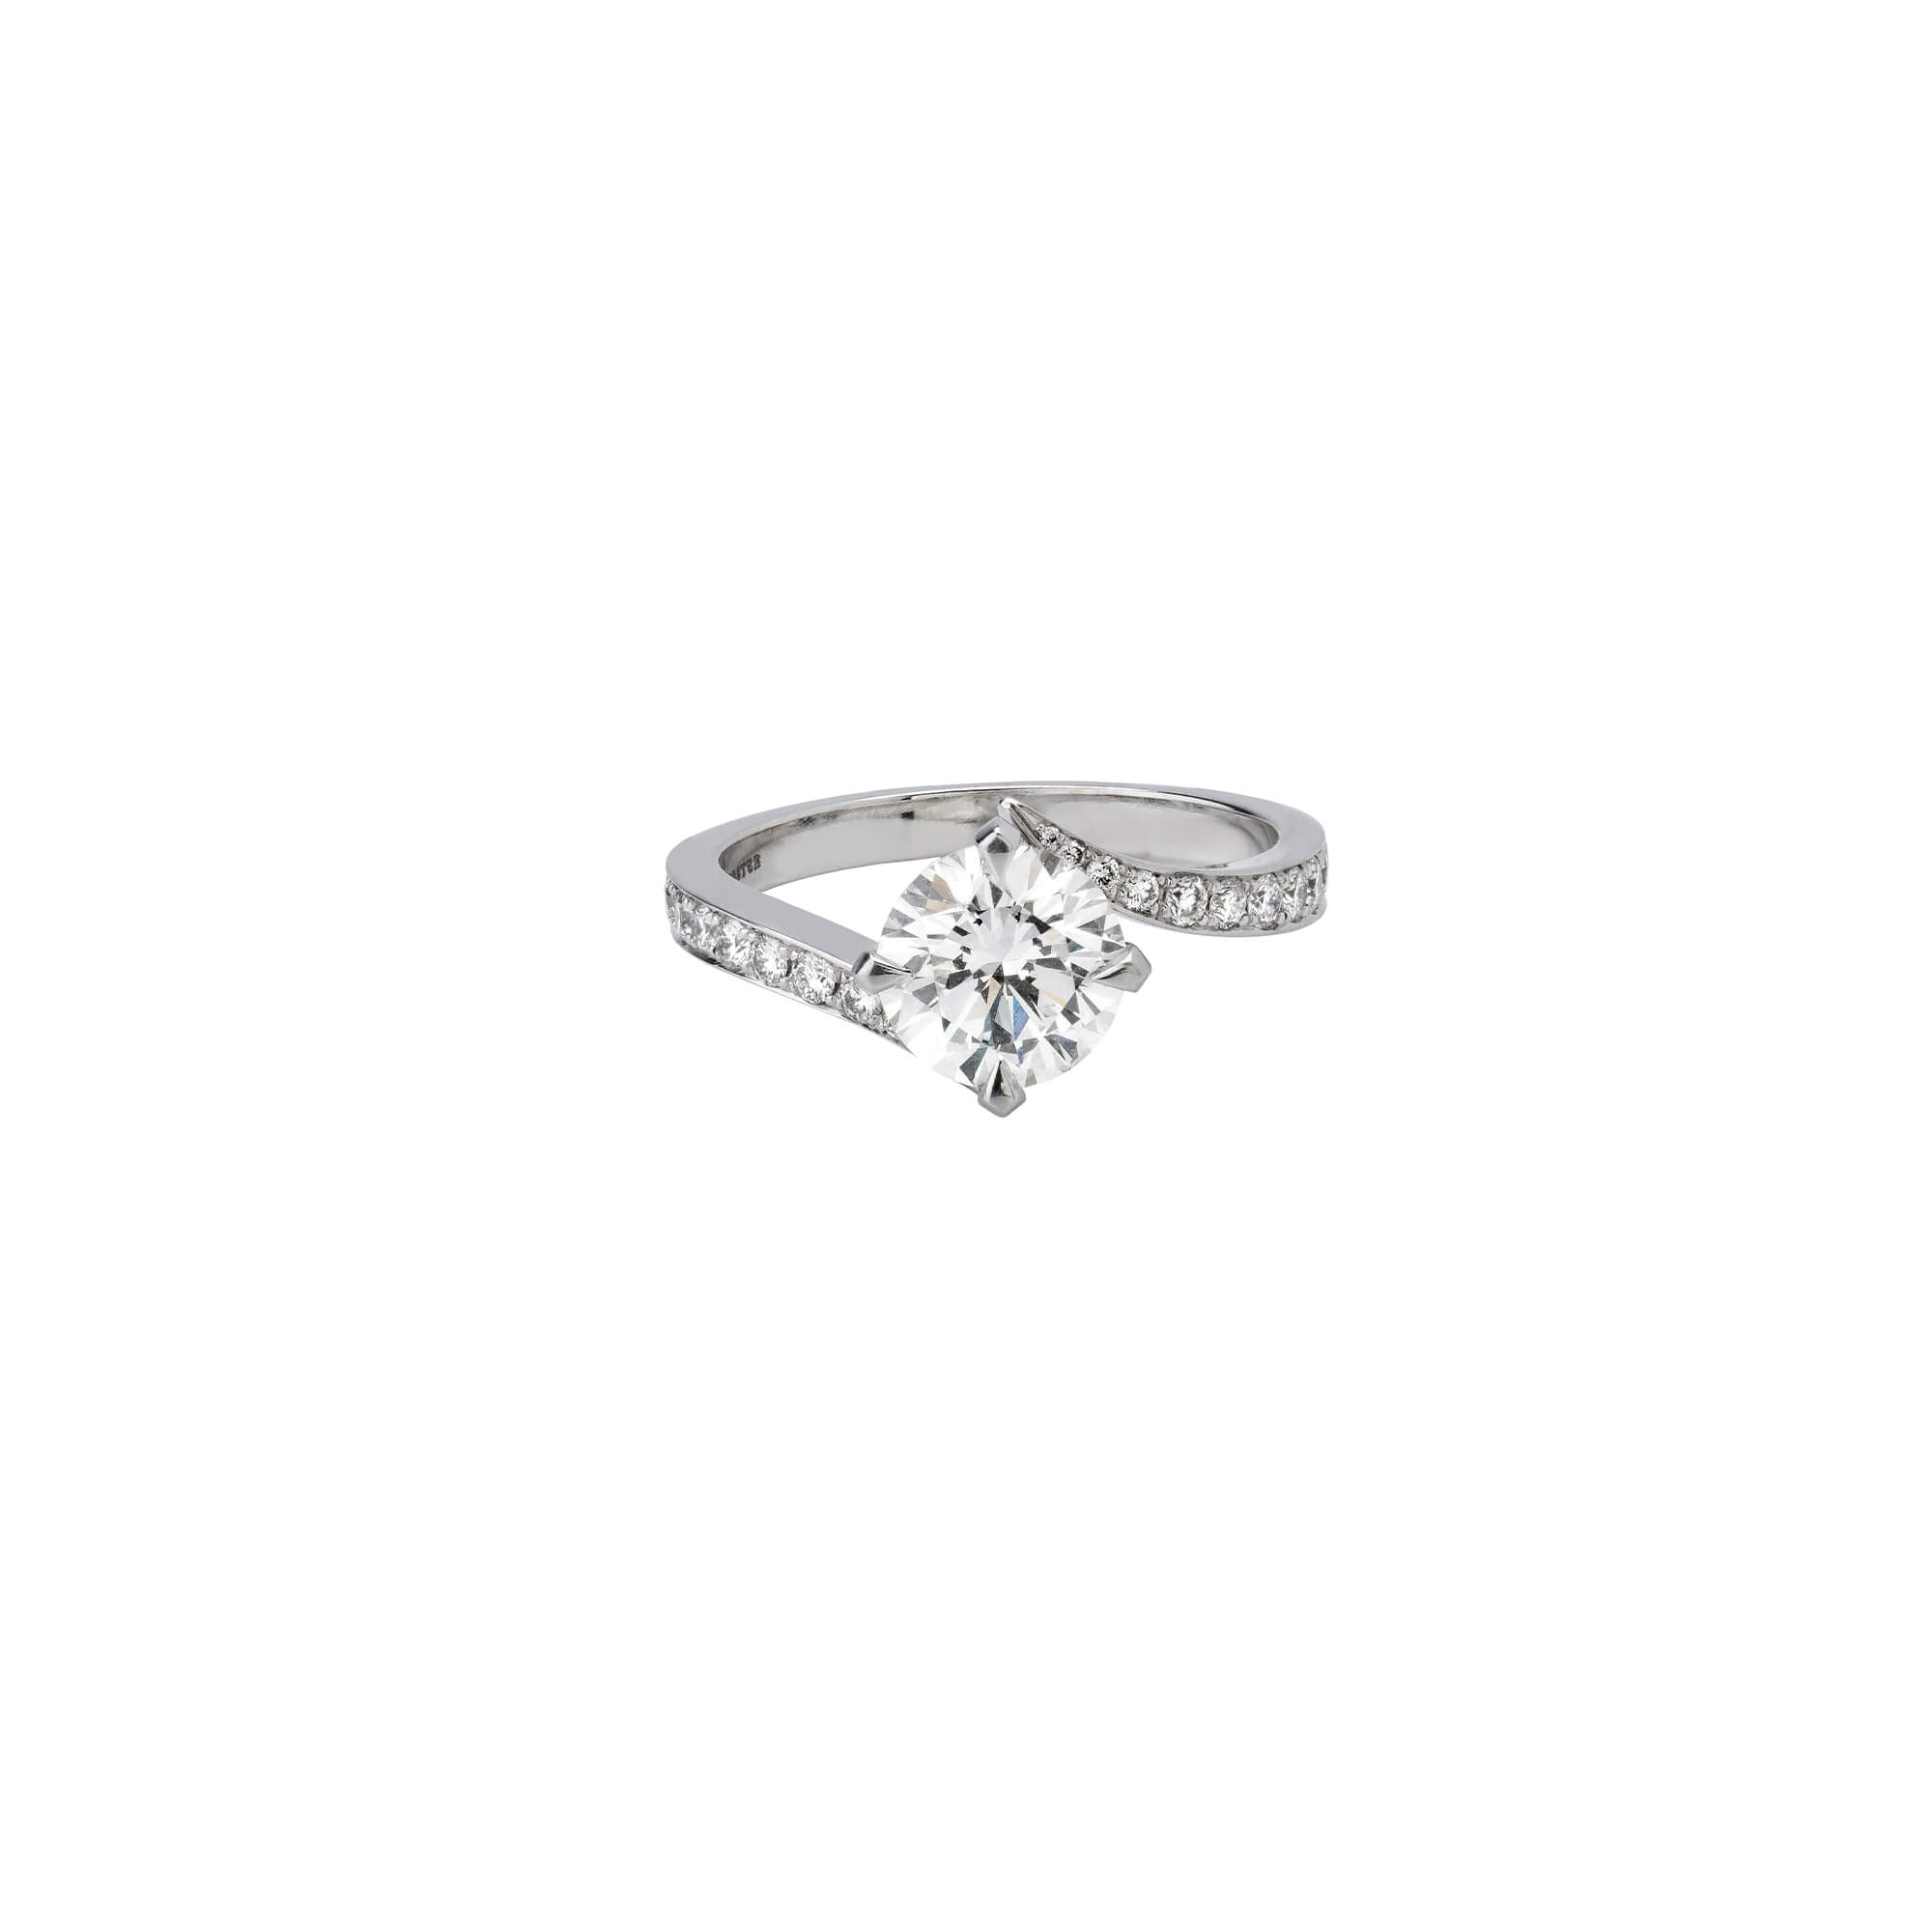 White Gold Interlocking Diamond Engagement Ring | Stephen Webster